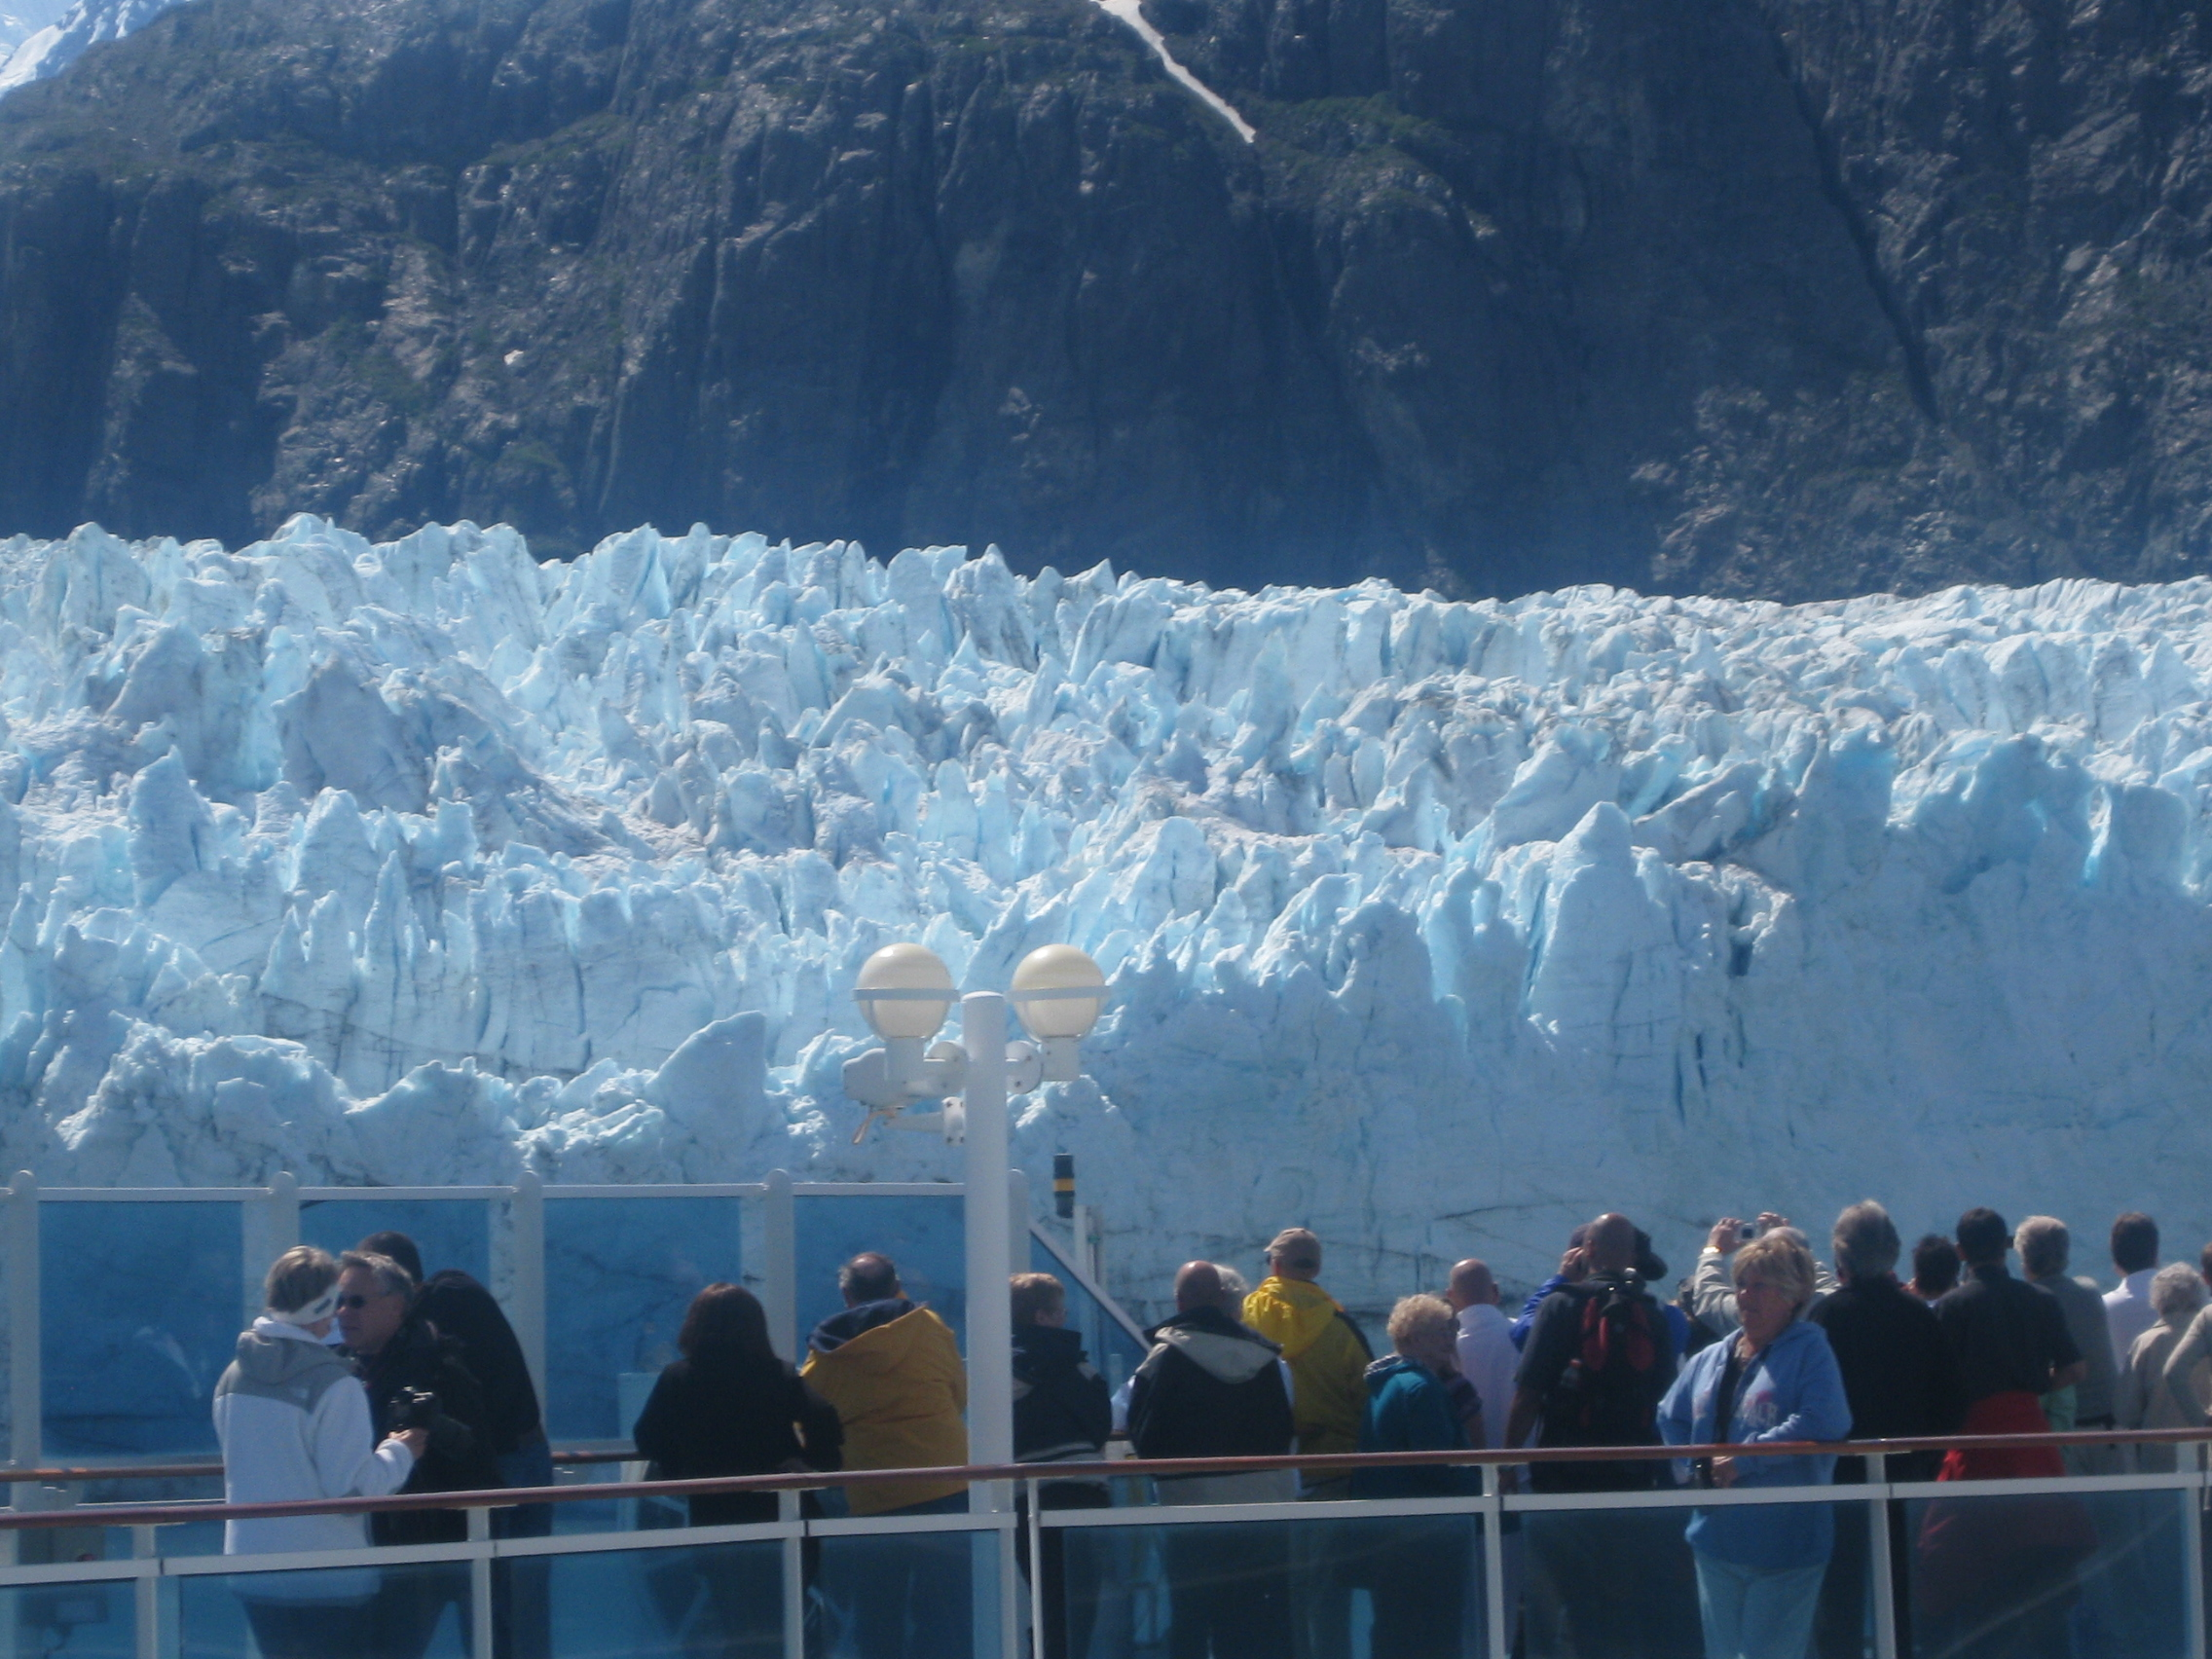 Dramatic_view_of_Marjerie_glacier_from_a_cruise_ship